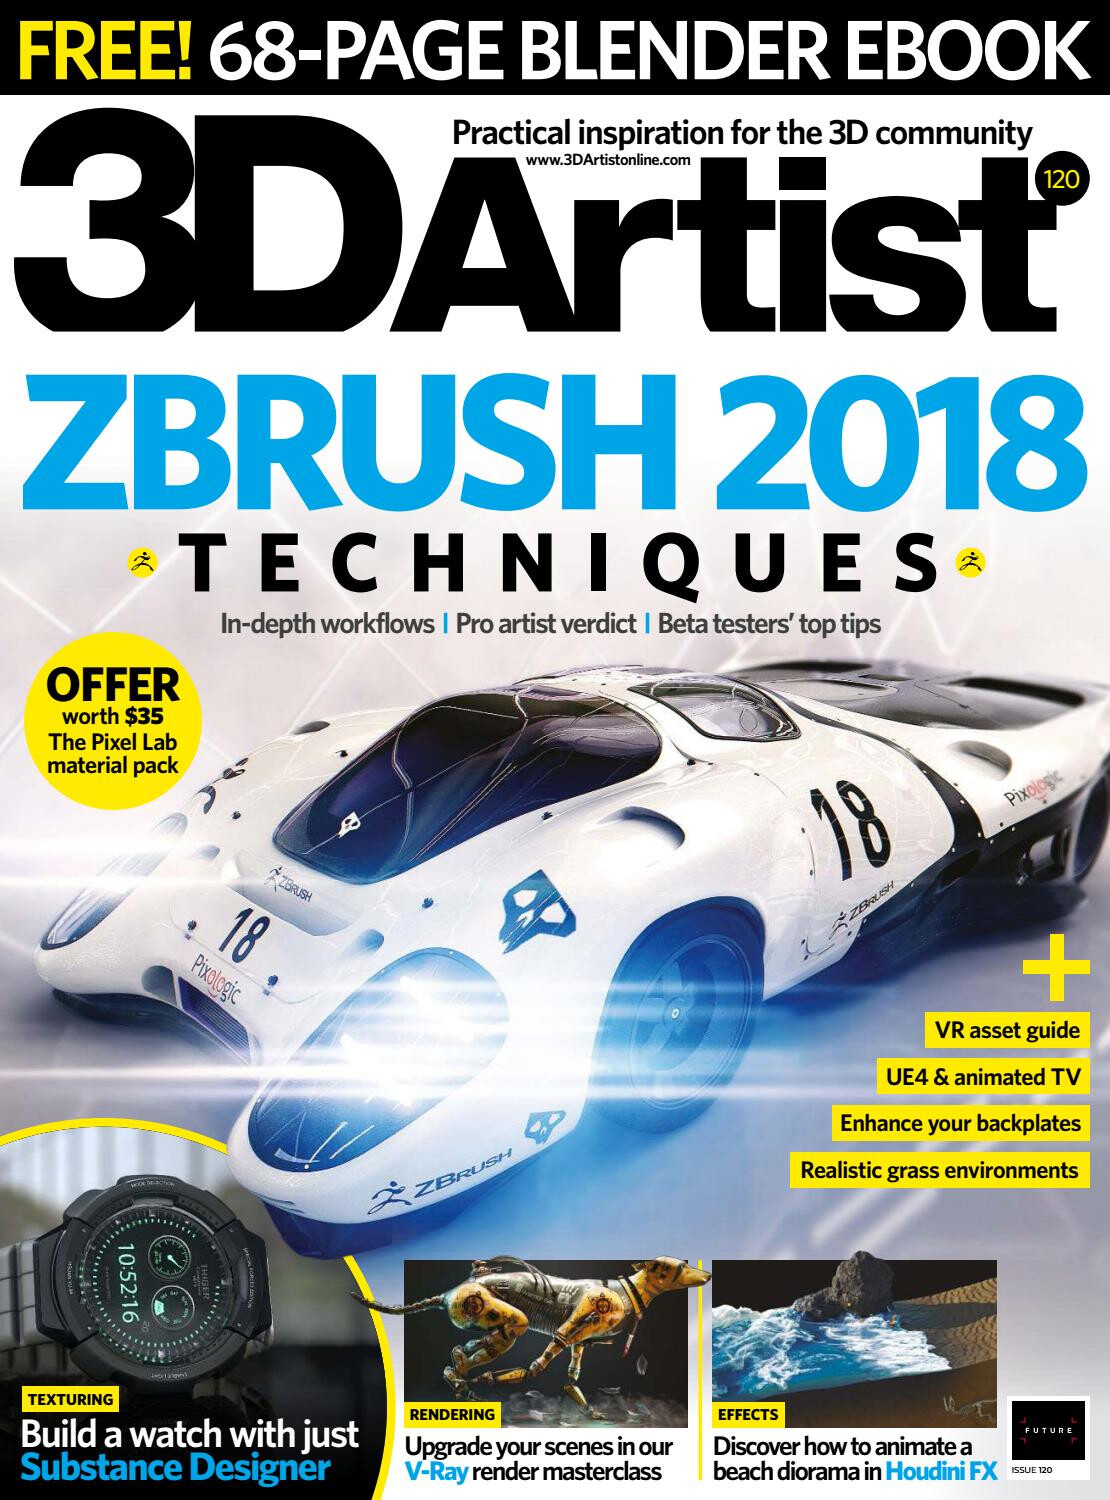 You can check out the article at a higher resolution here: https://issuu.com/danielahuactzin/docs/3d_artist_-_issue_120_2018/70